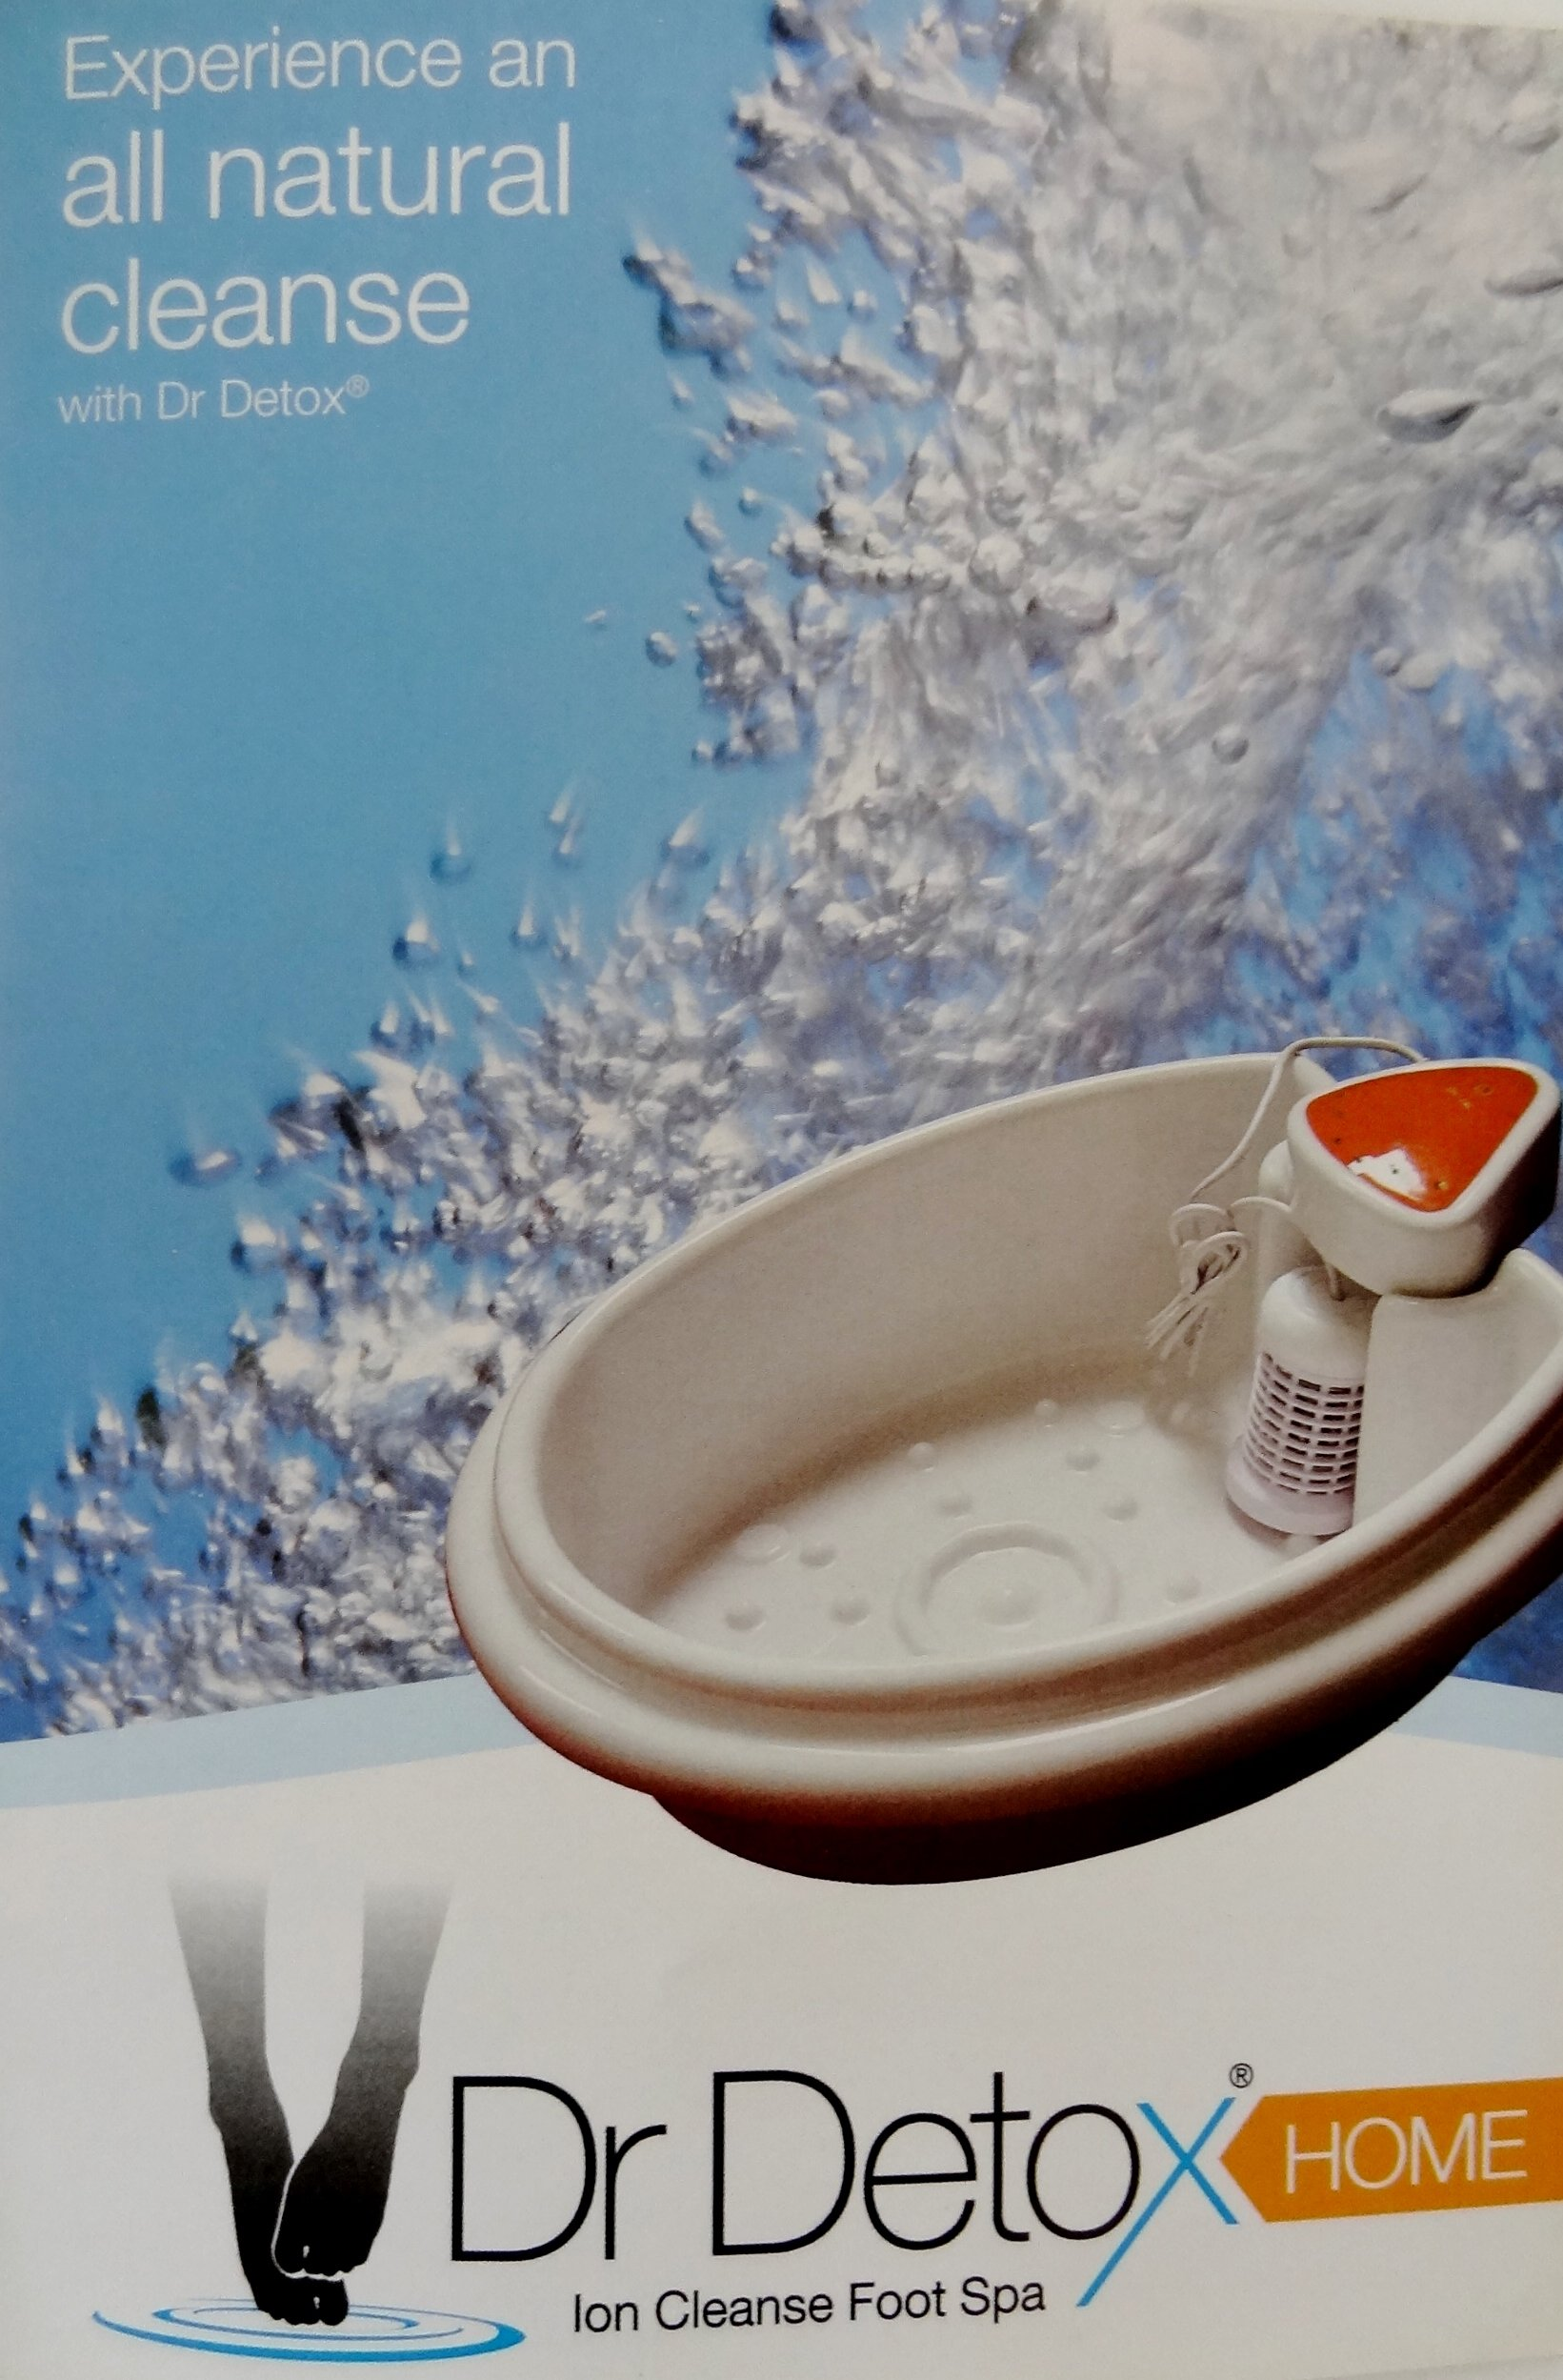 Foot Spa - DR. DETOX - Ion Detox Ionic Foot Bath Spa Chi Cleanse Unit for Home Use. Comes with Free Extras! 1 Year Warranty